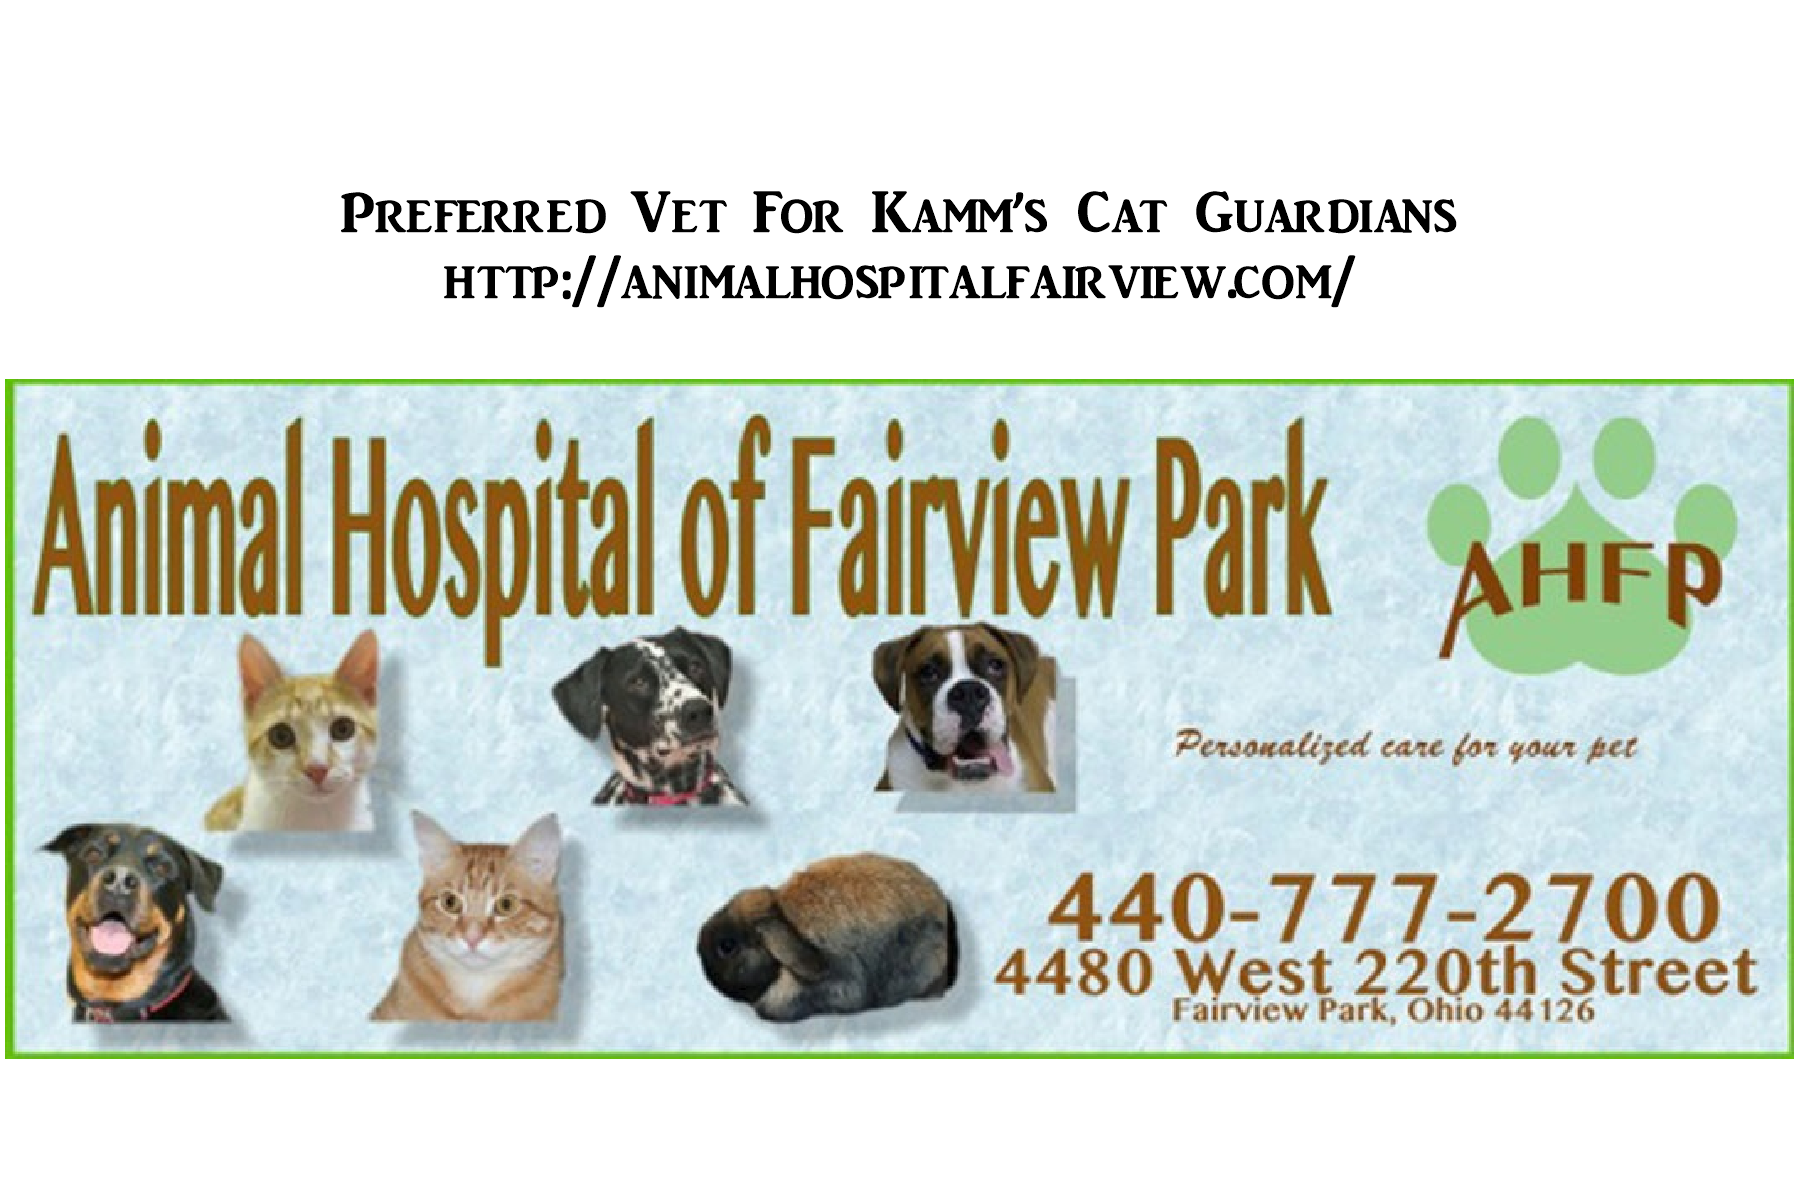 Copy of Animal Hospital of Fairview